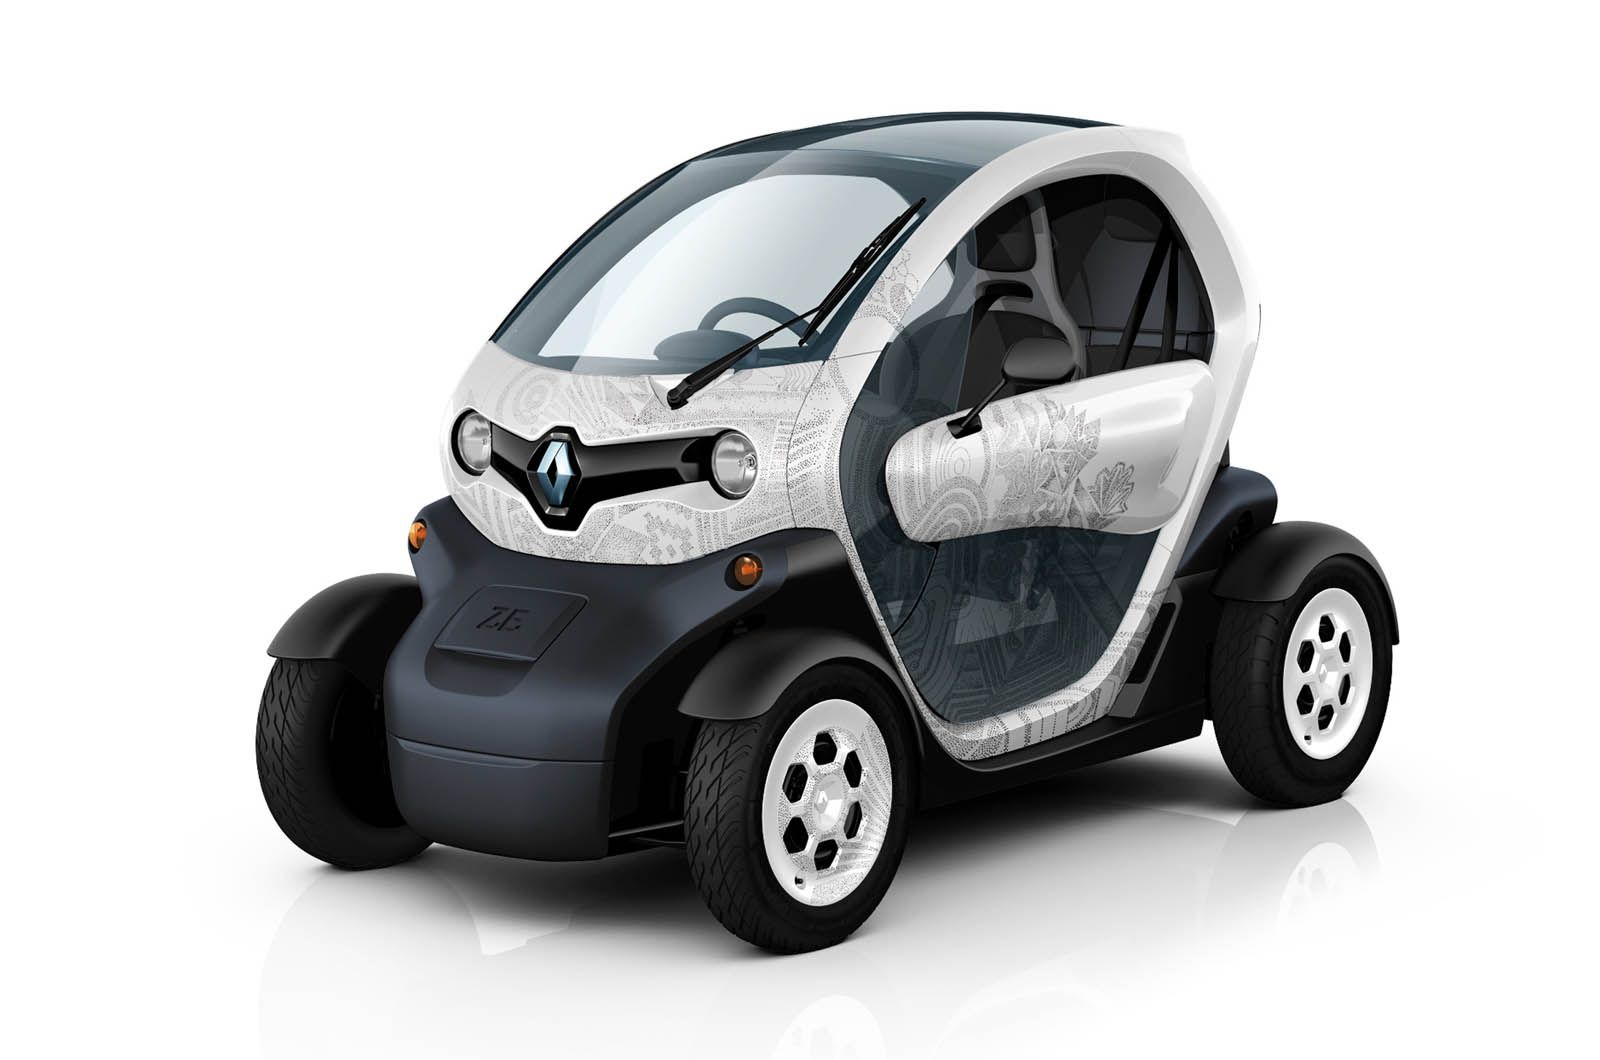 French Manufacturer Renault Has Unveiled A New Electric Car That Makes It Blend Urban Electric Vehicle And The Technology Used Electric Cars Renault Cute Cars